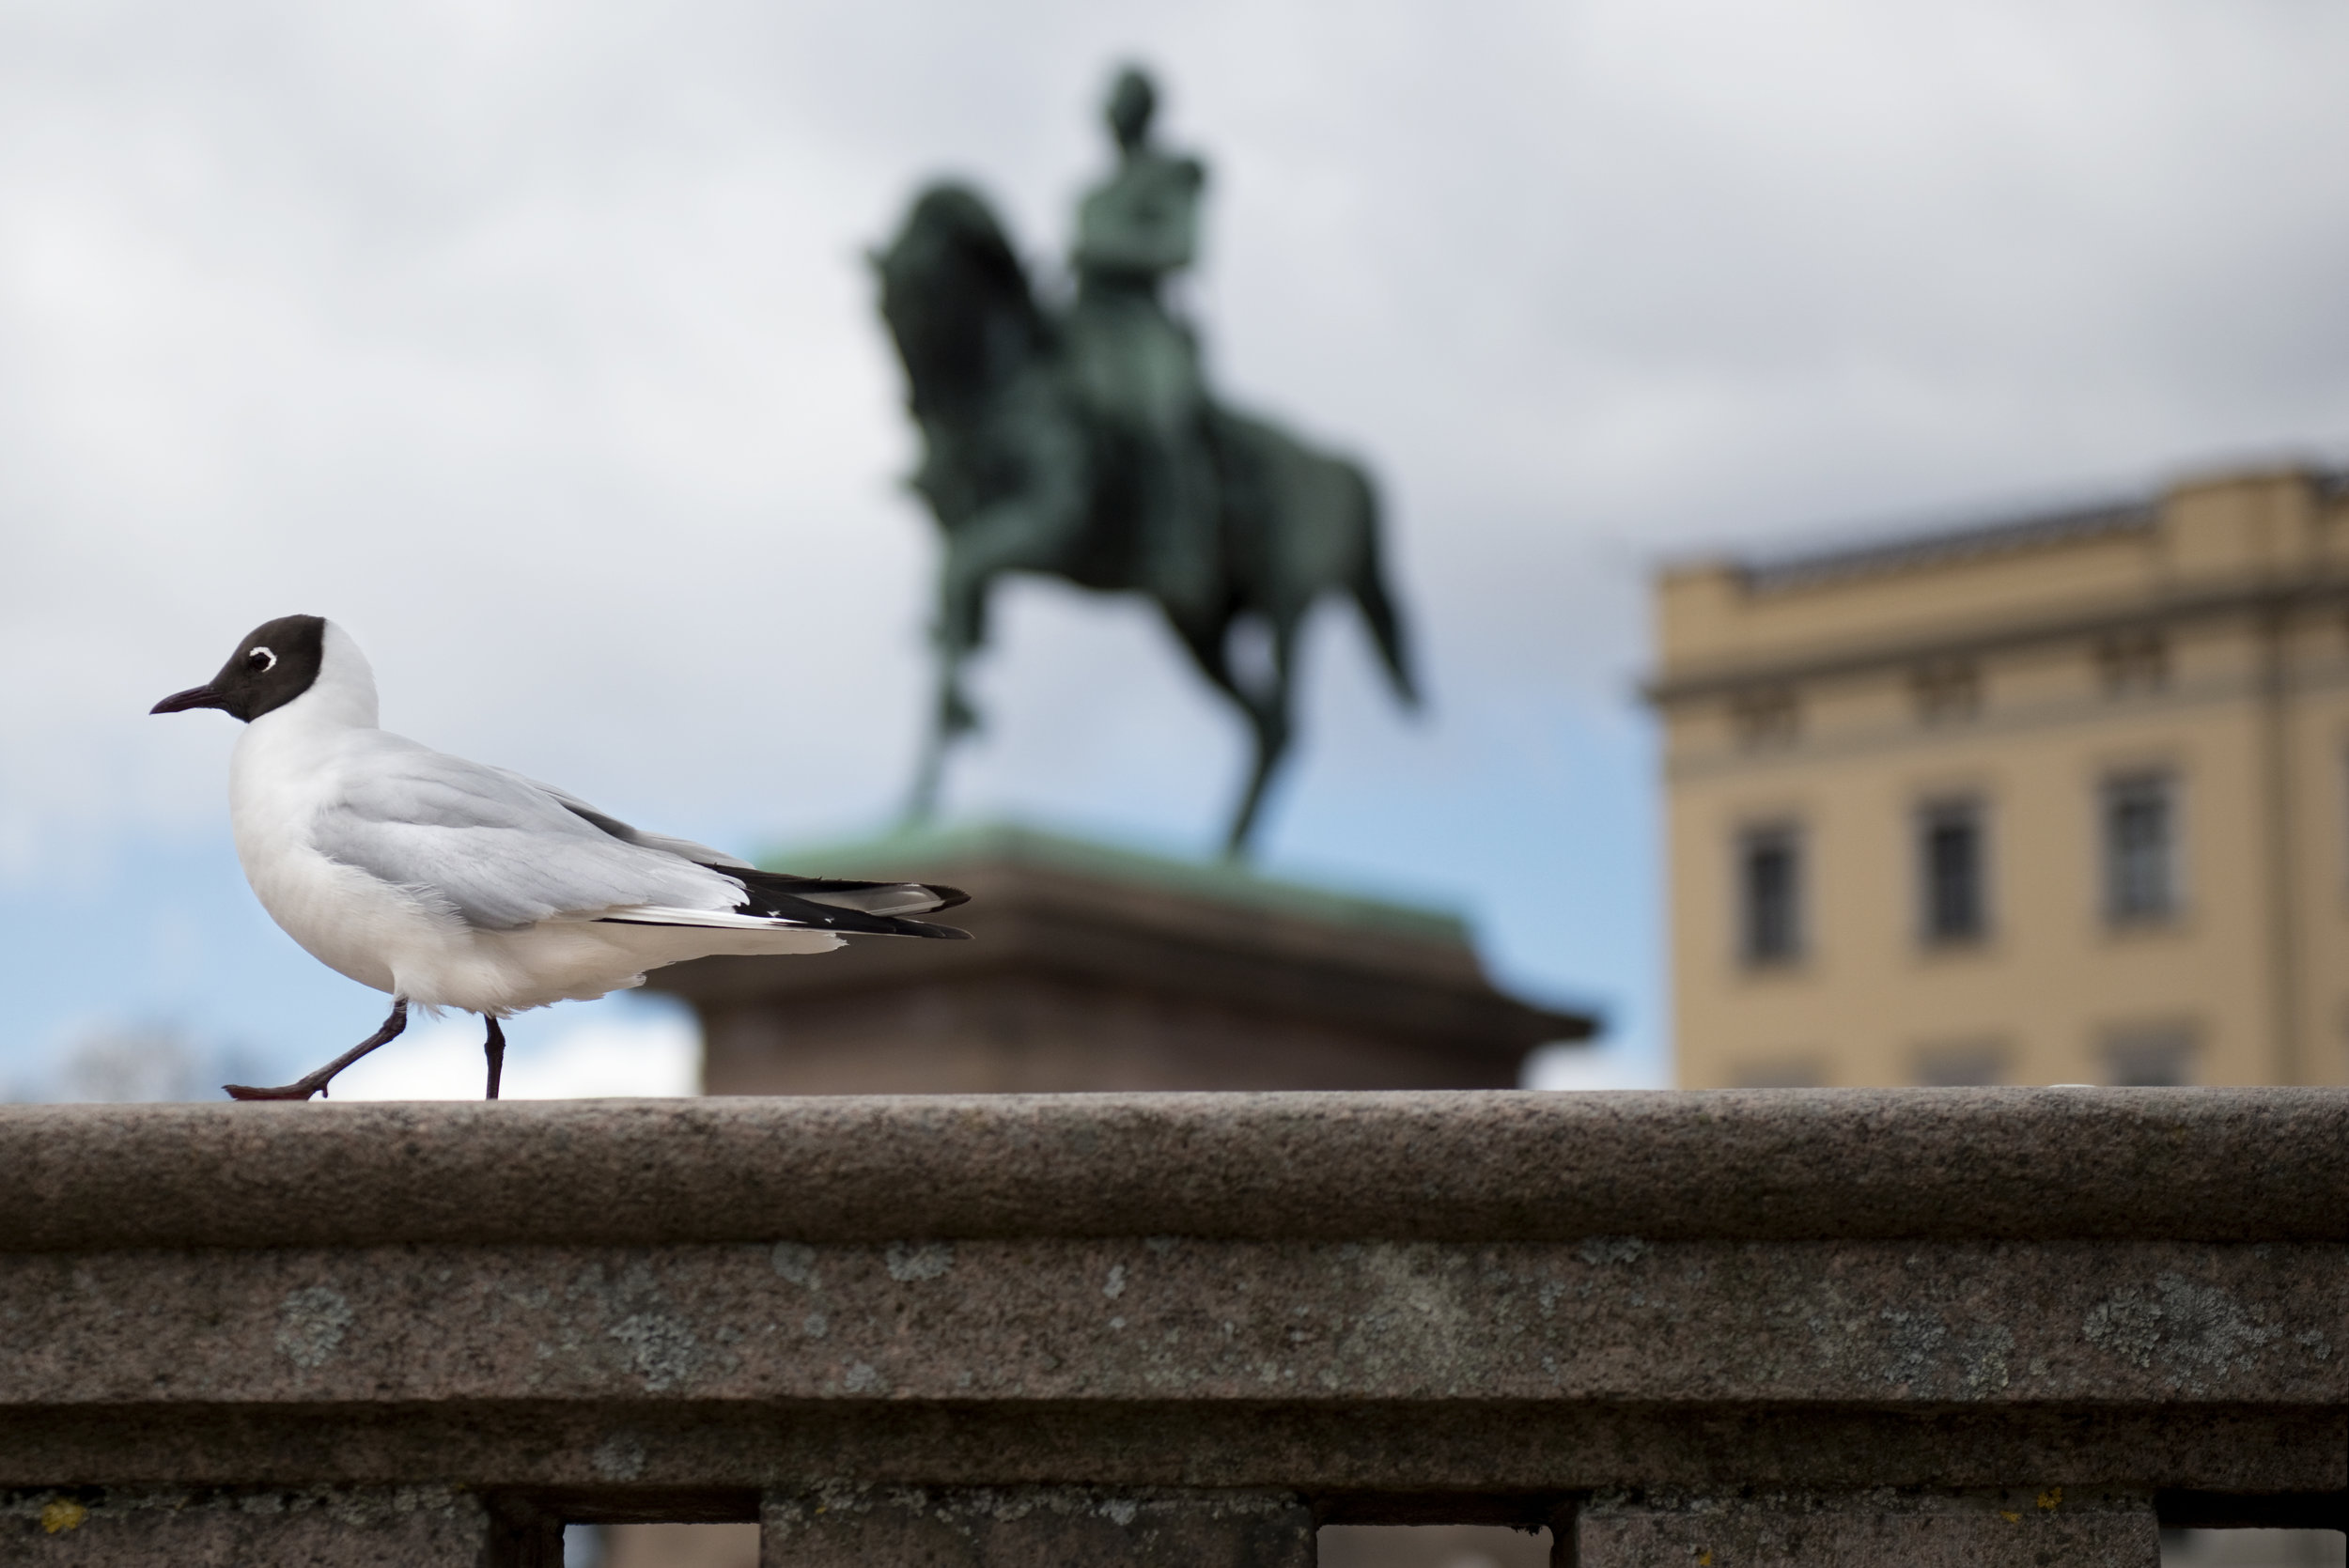 A black headed gull in front of the Royal Palace